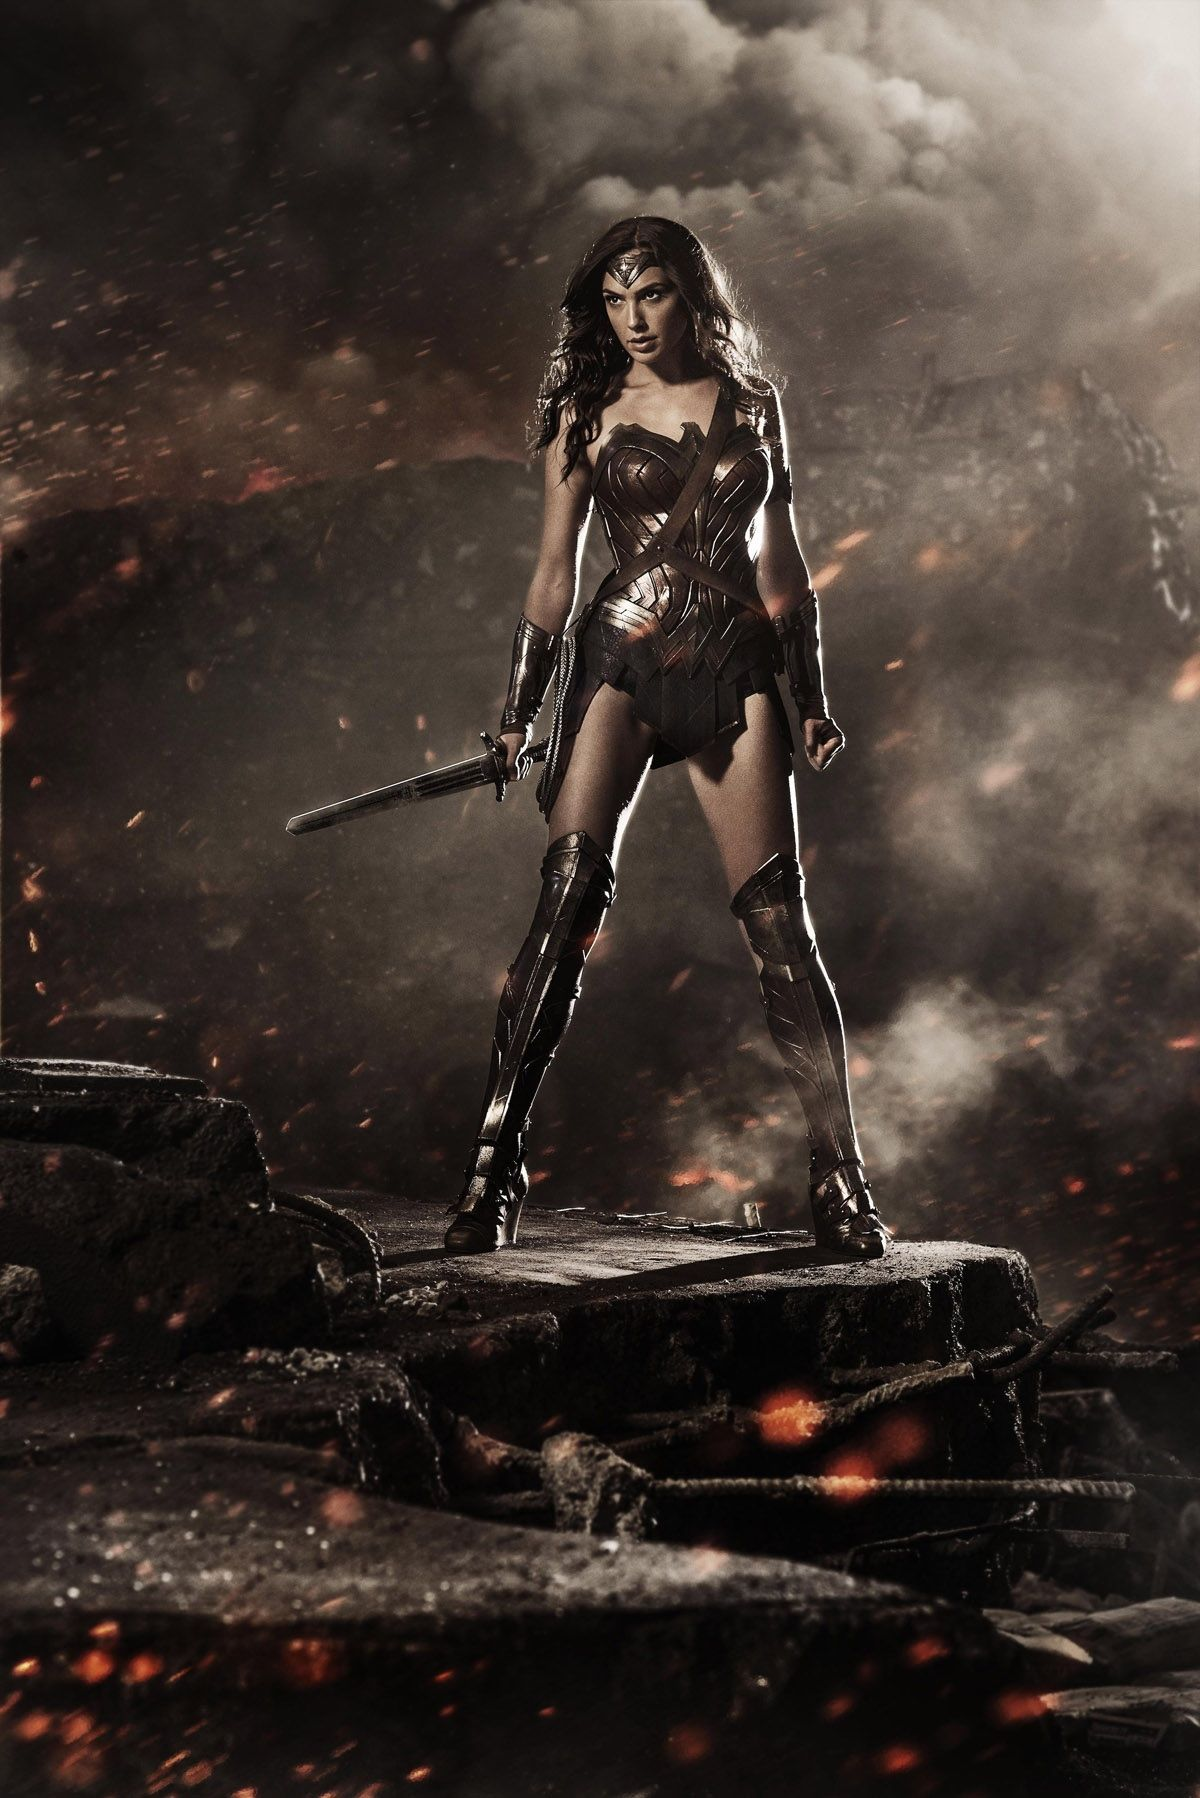 We have finally seen our first images of Gal Gadot's costume, so what is the correct reaction to Zack Snyder's Wonder Woman?